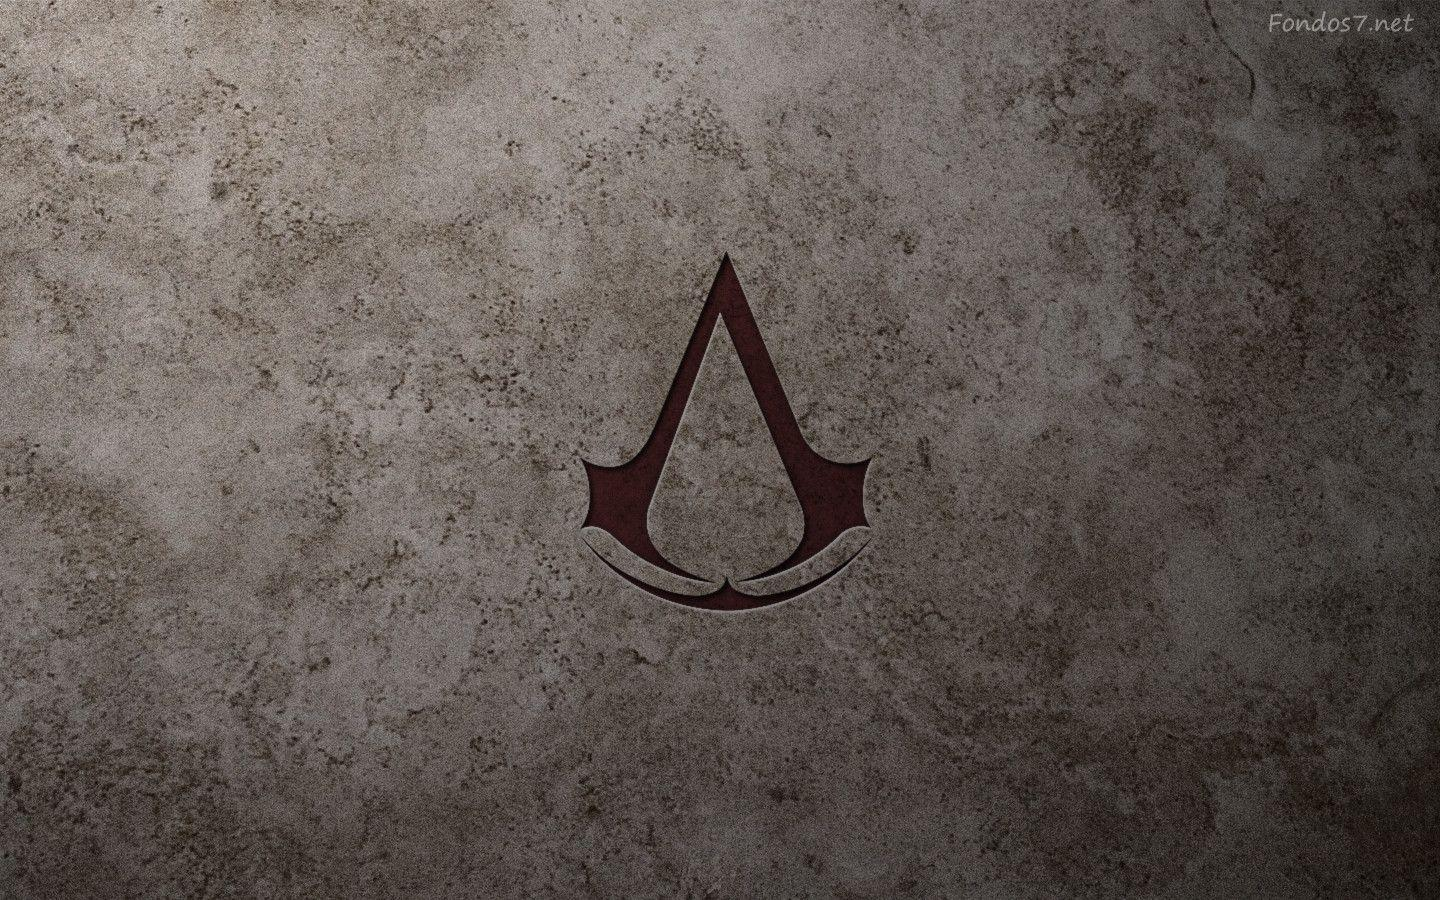 Descargar Fondos de pantalla assassins creed logo hd widescreen